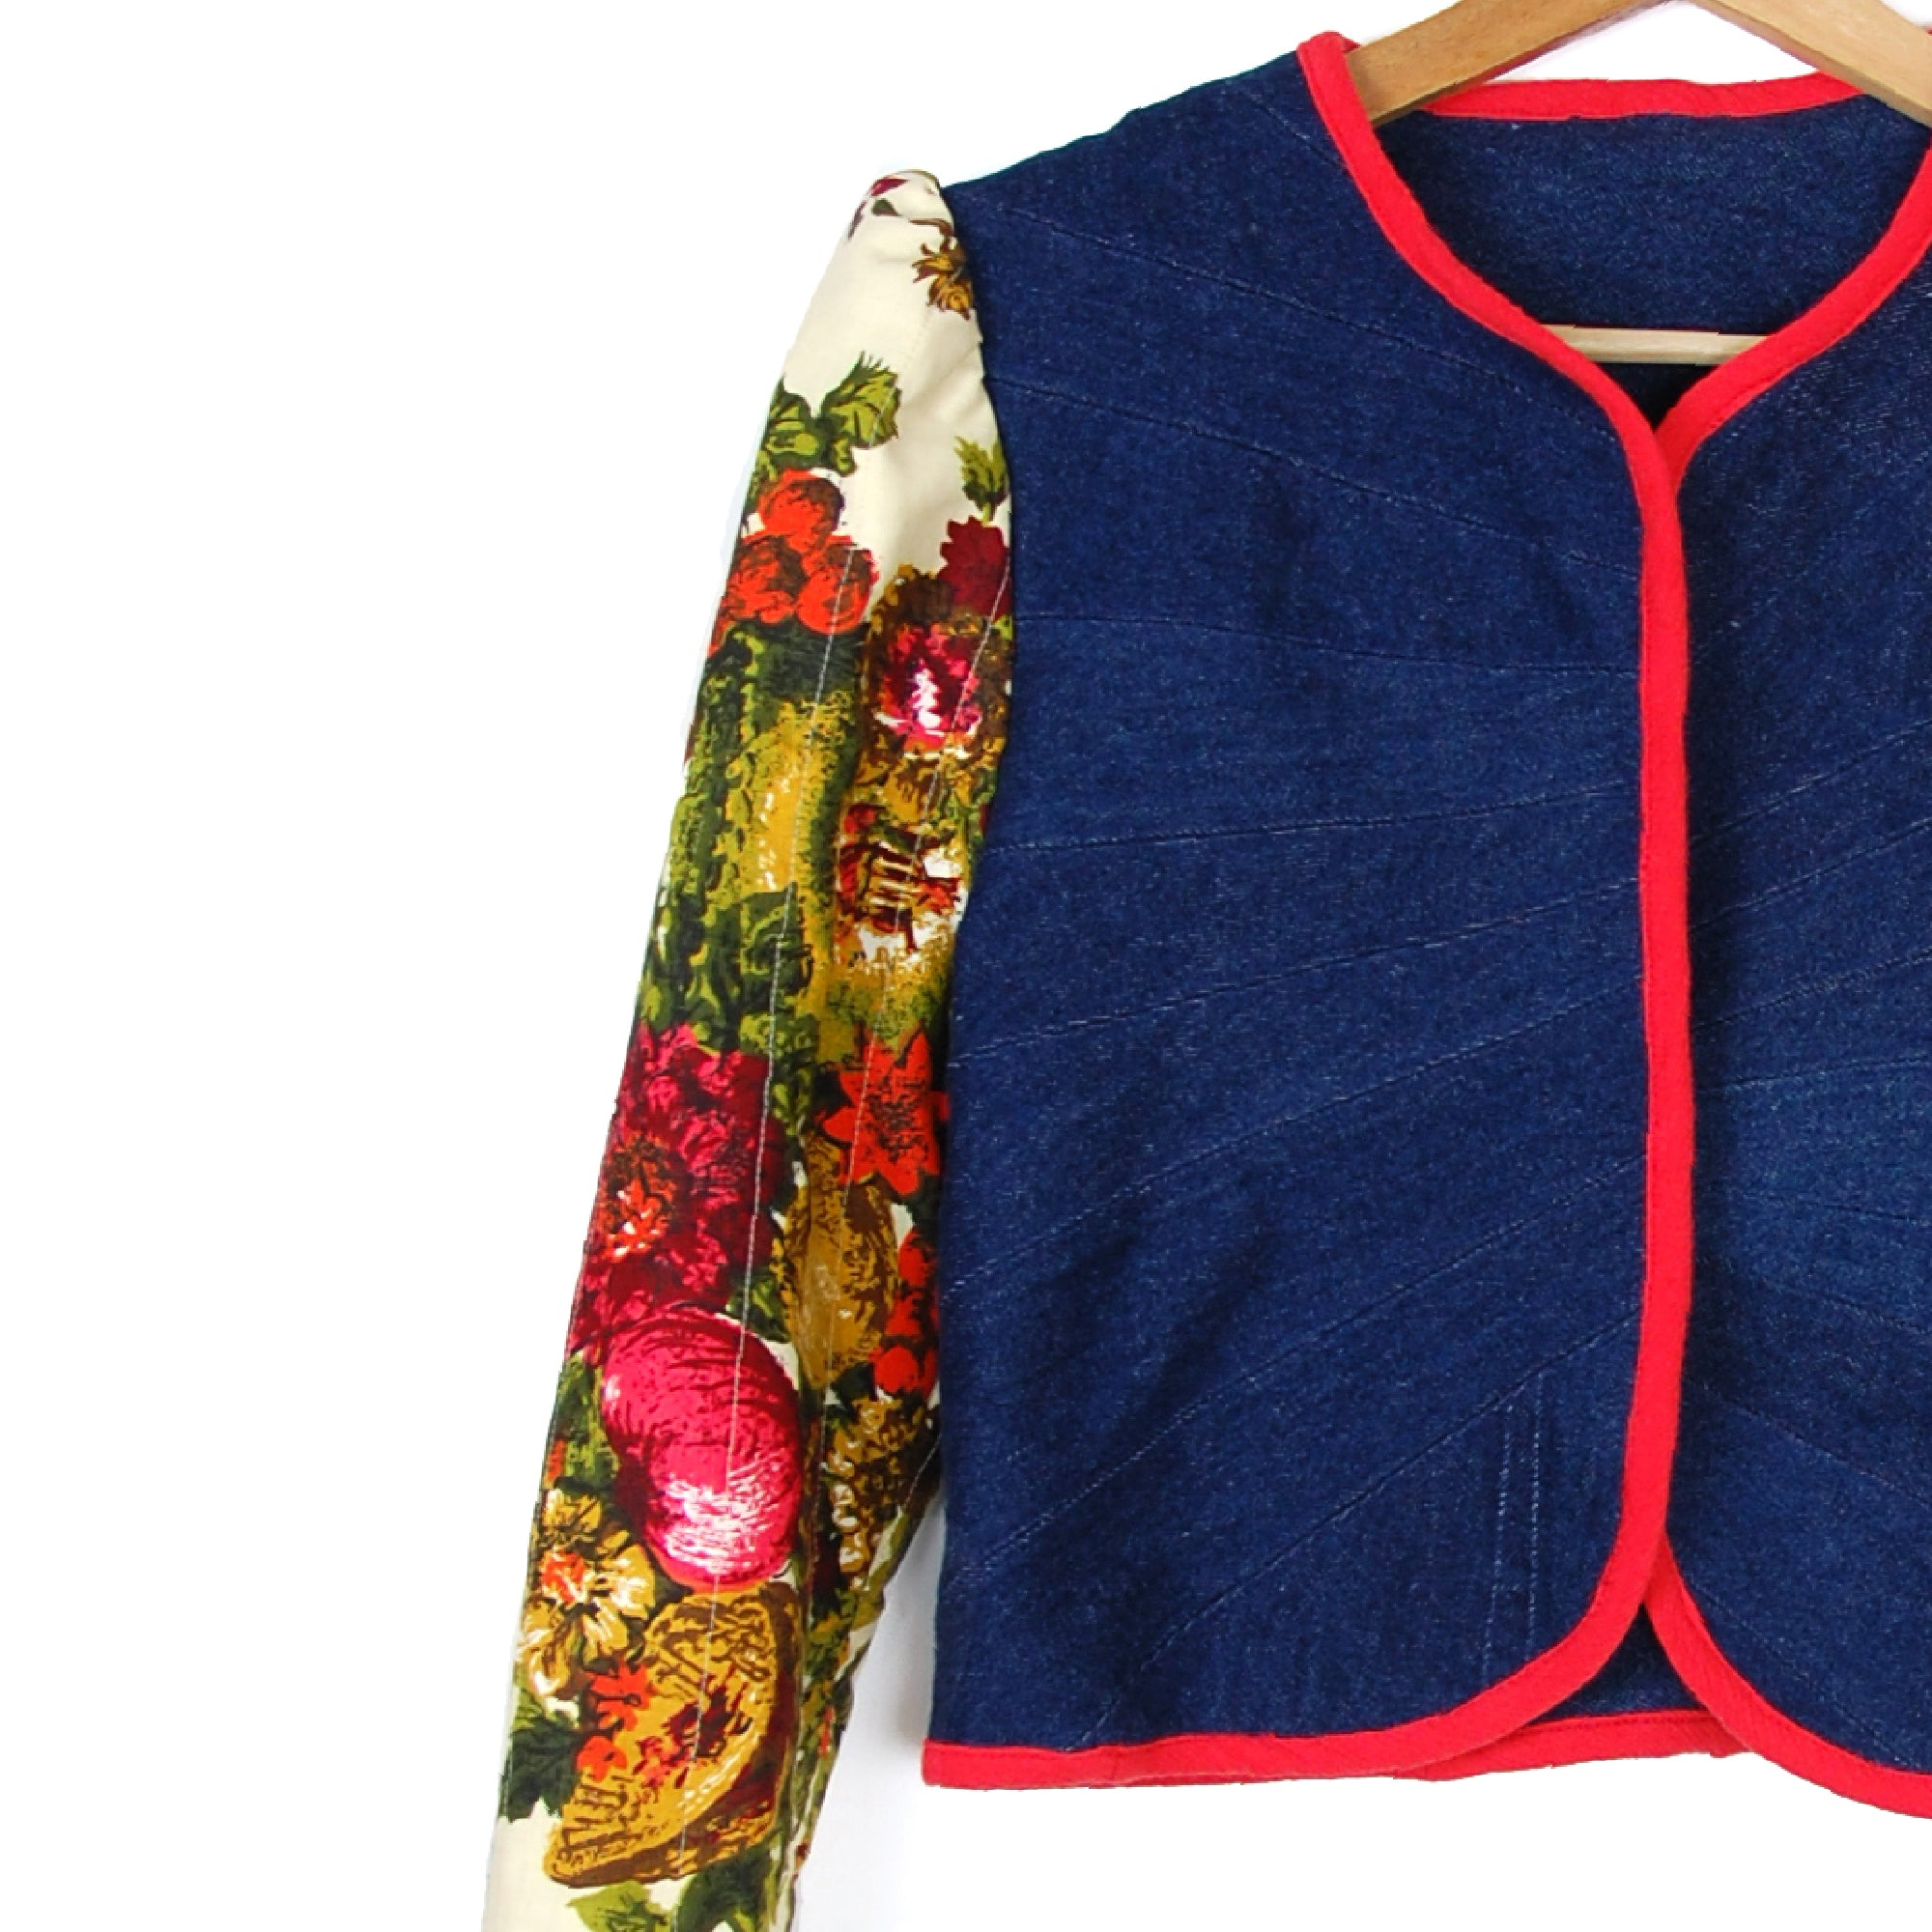 LOVE SEAT QUILTED JACKET - Late to the Party